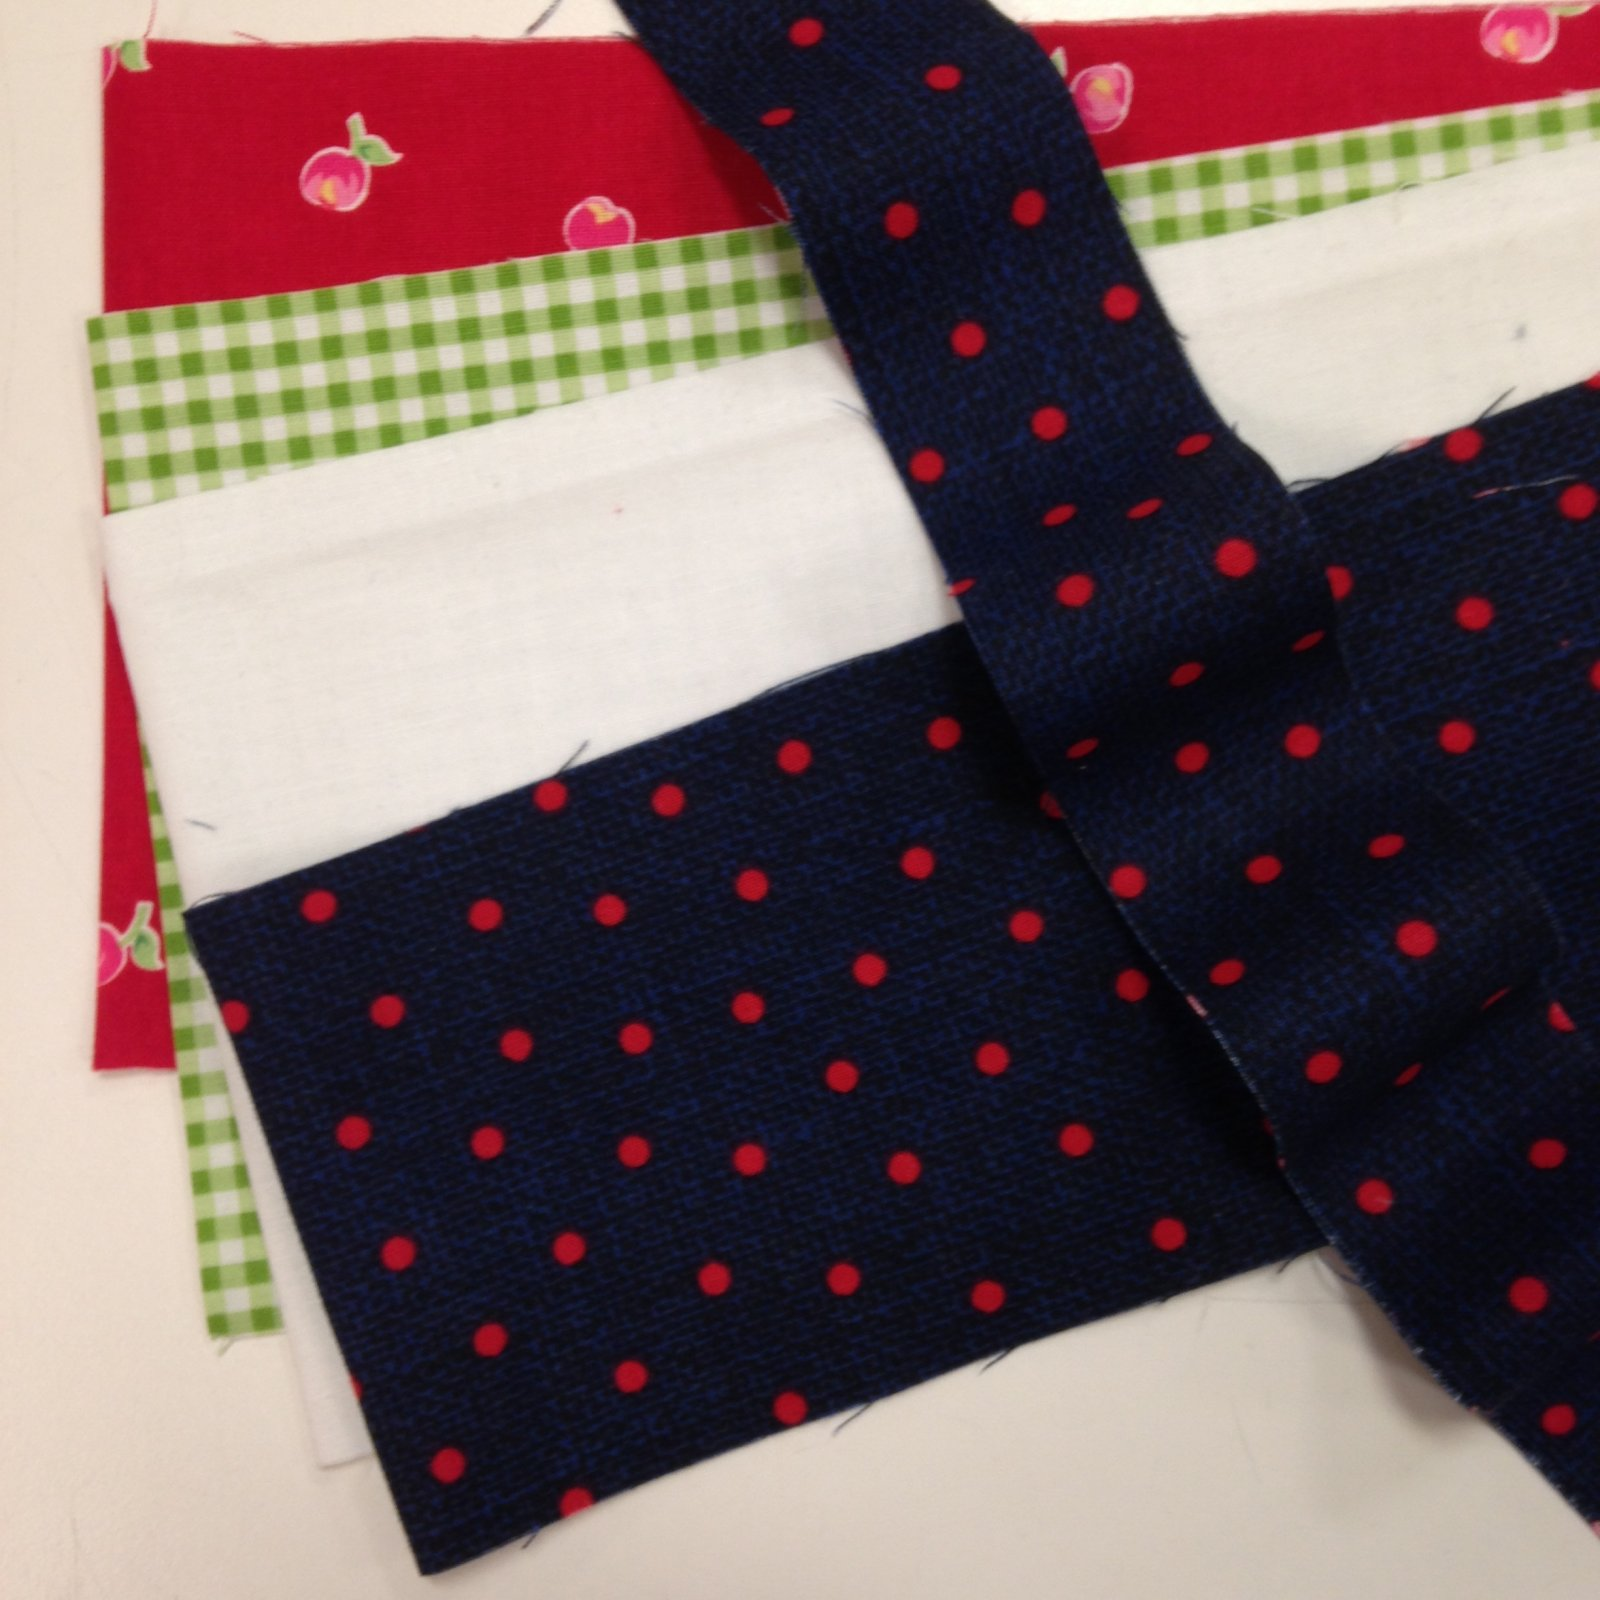 Folded Star Fabric Kits